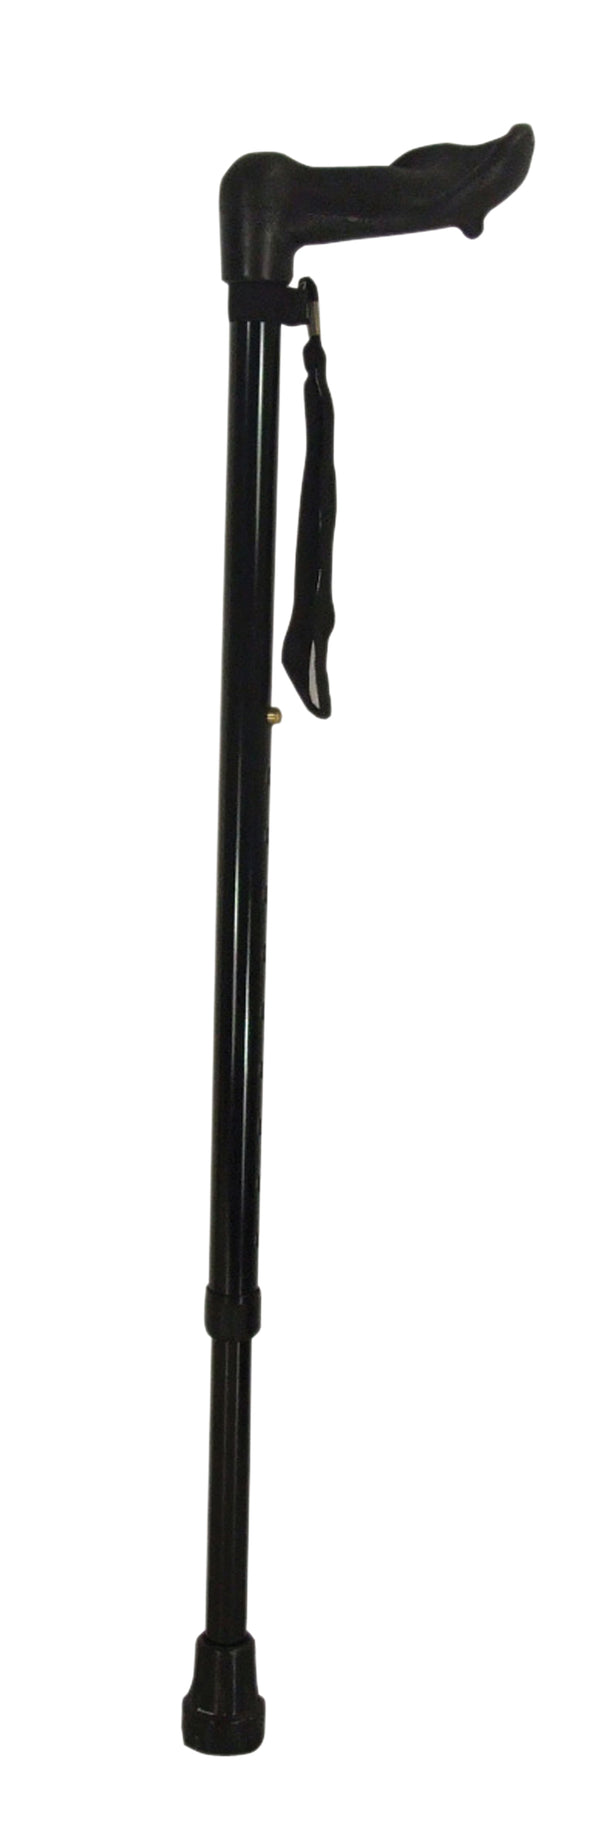 Wooden handled walking stick with black loop and ferrule on a  white background